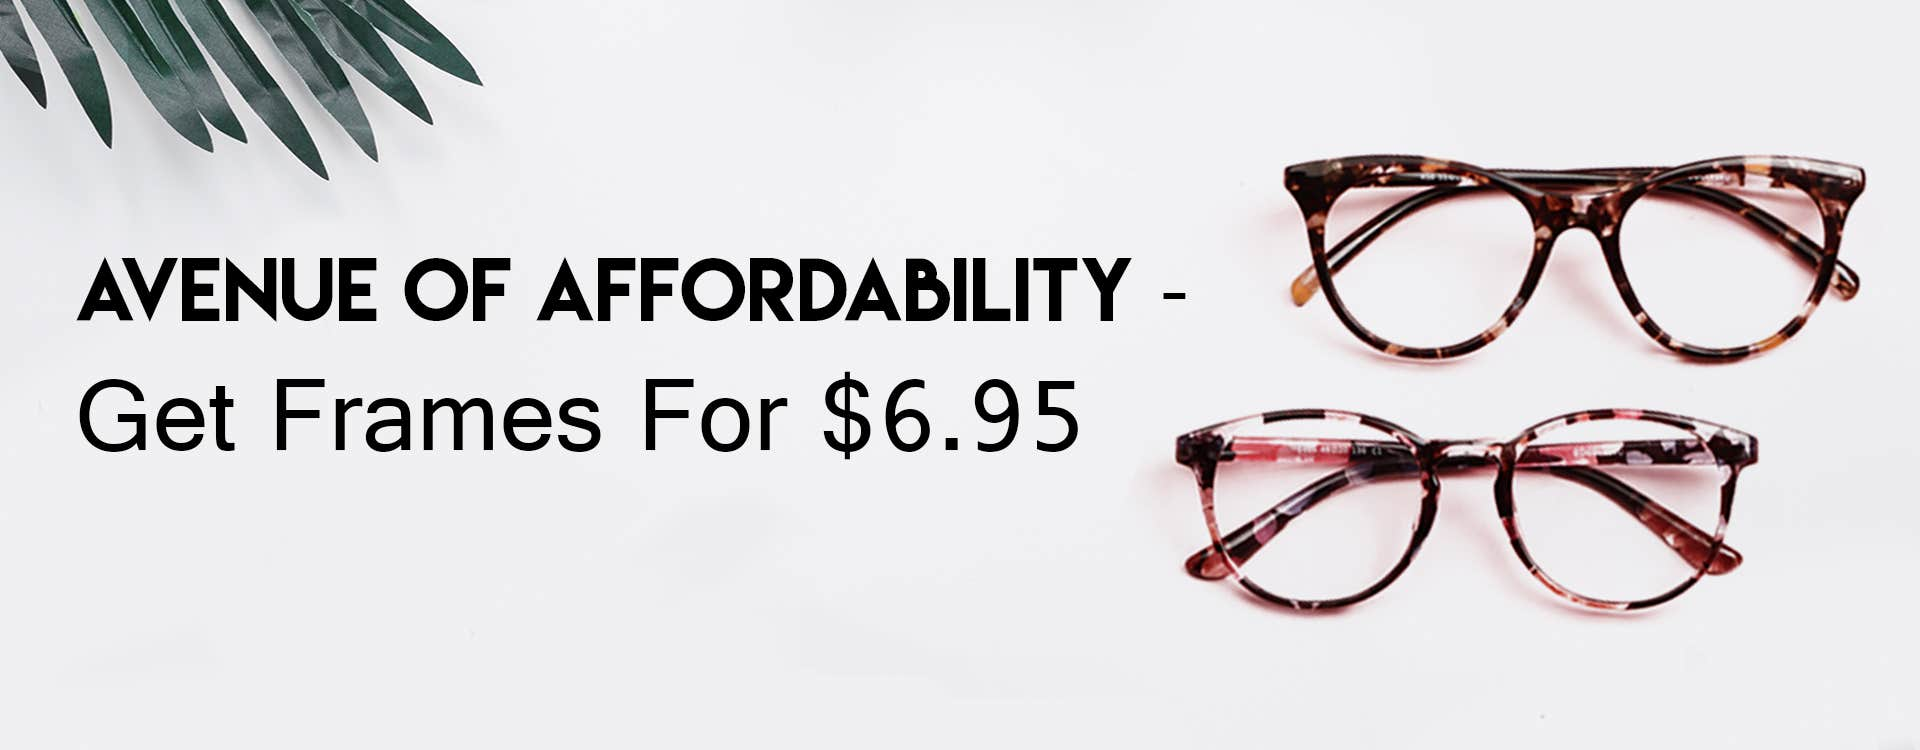 Avenue of Affordability - Get Frames For $6.95